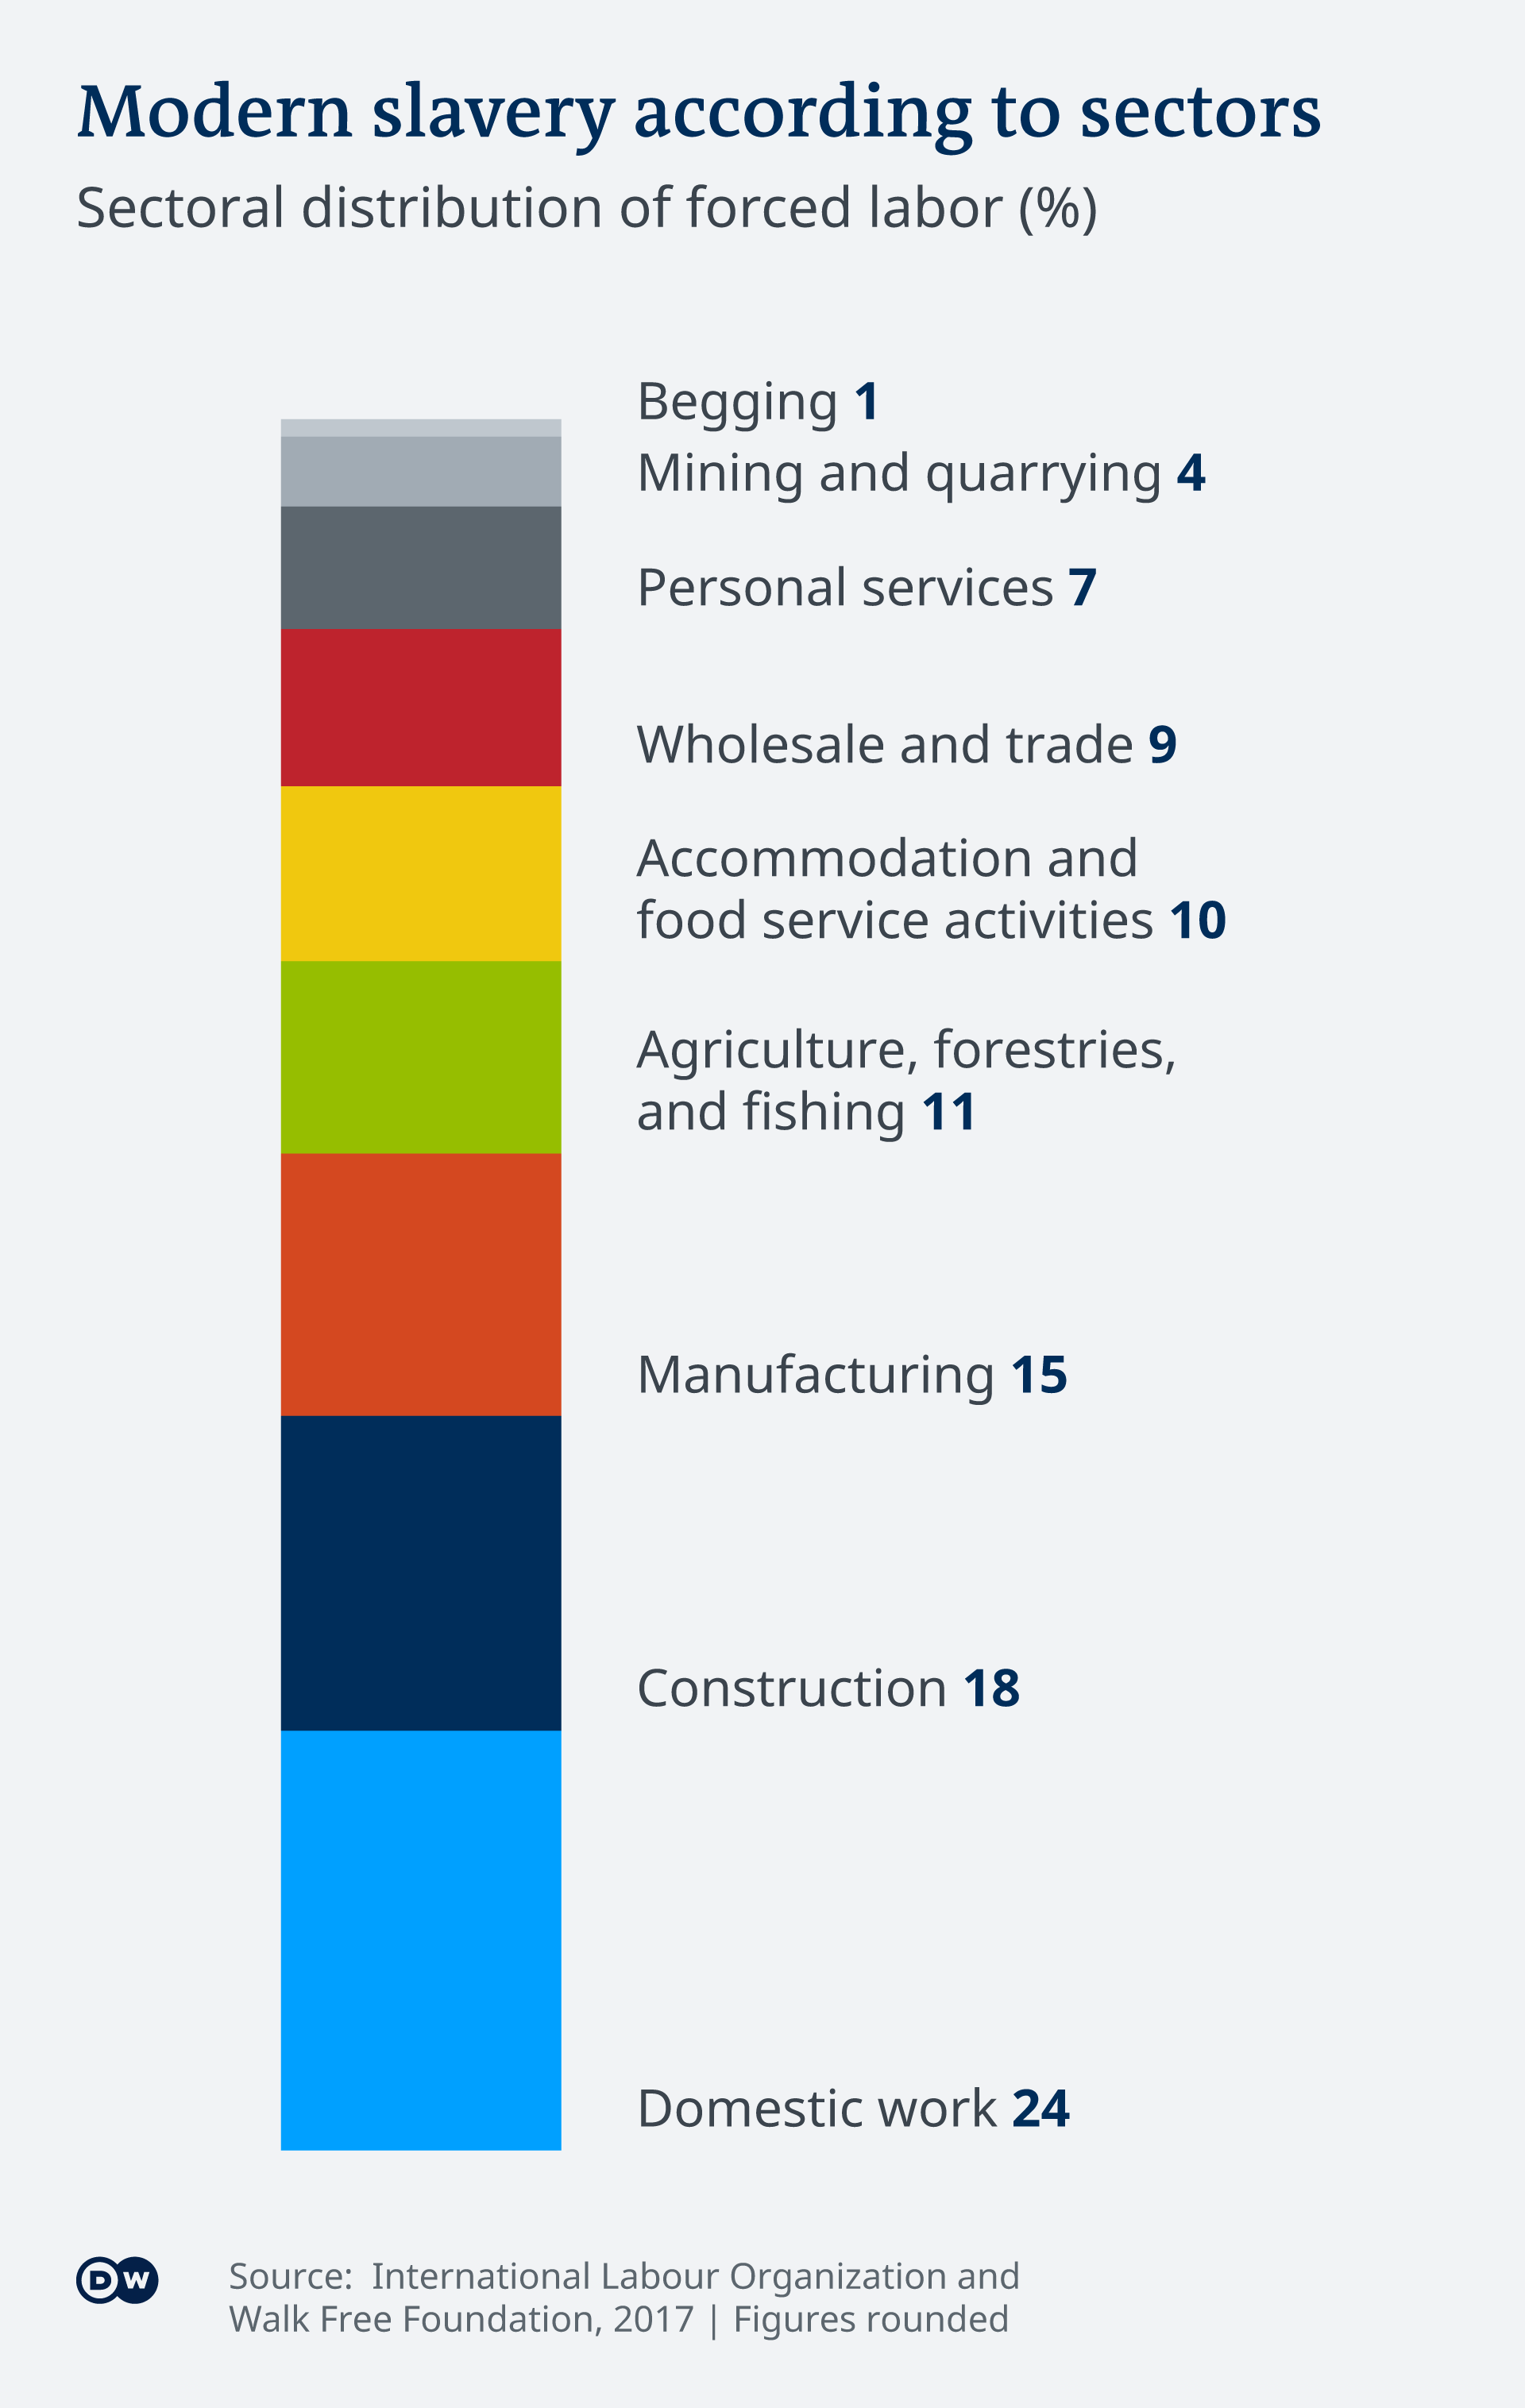 An infographic showing modern slavery by sector